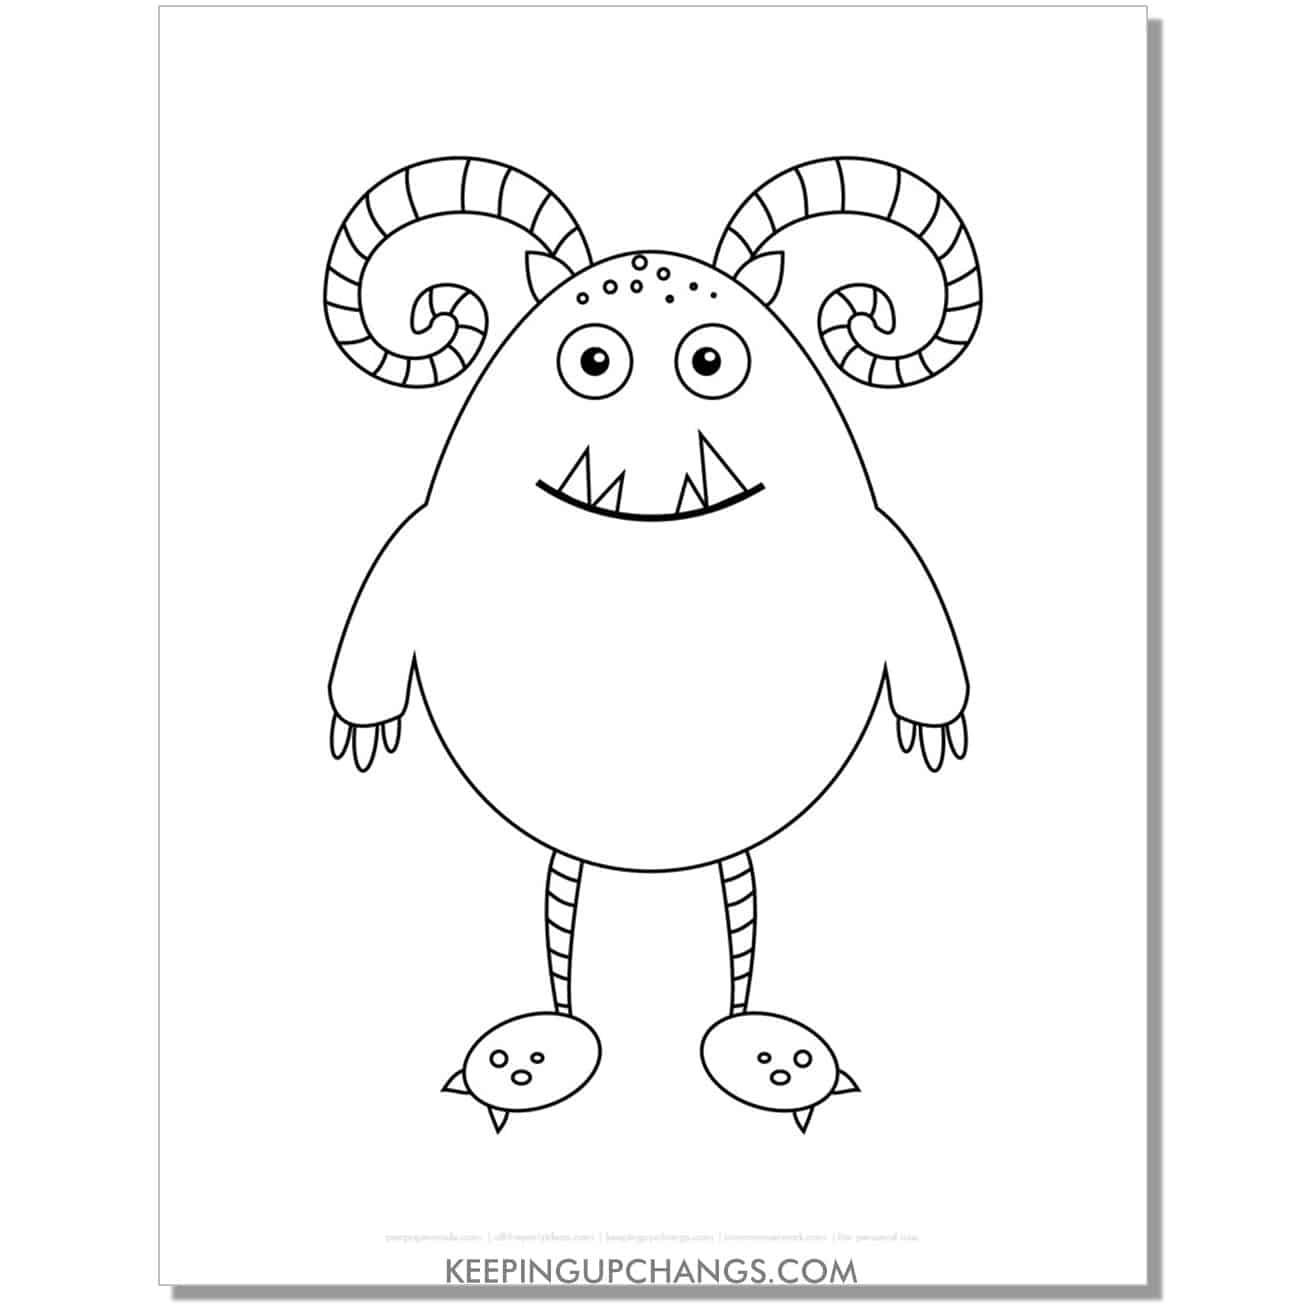 free curled horn monster coloring page.